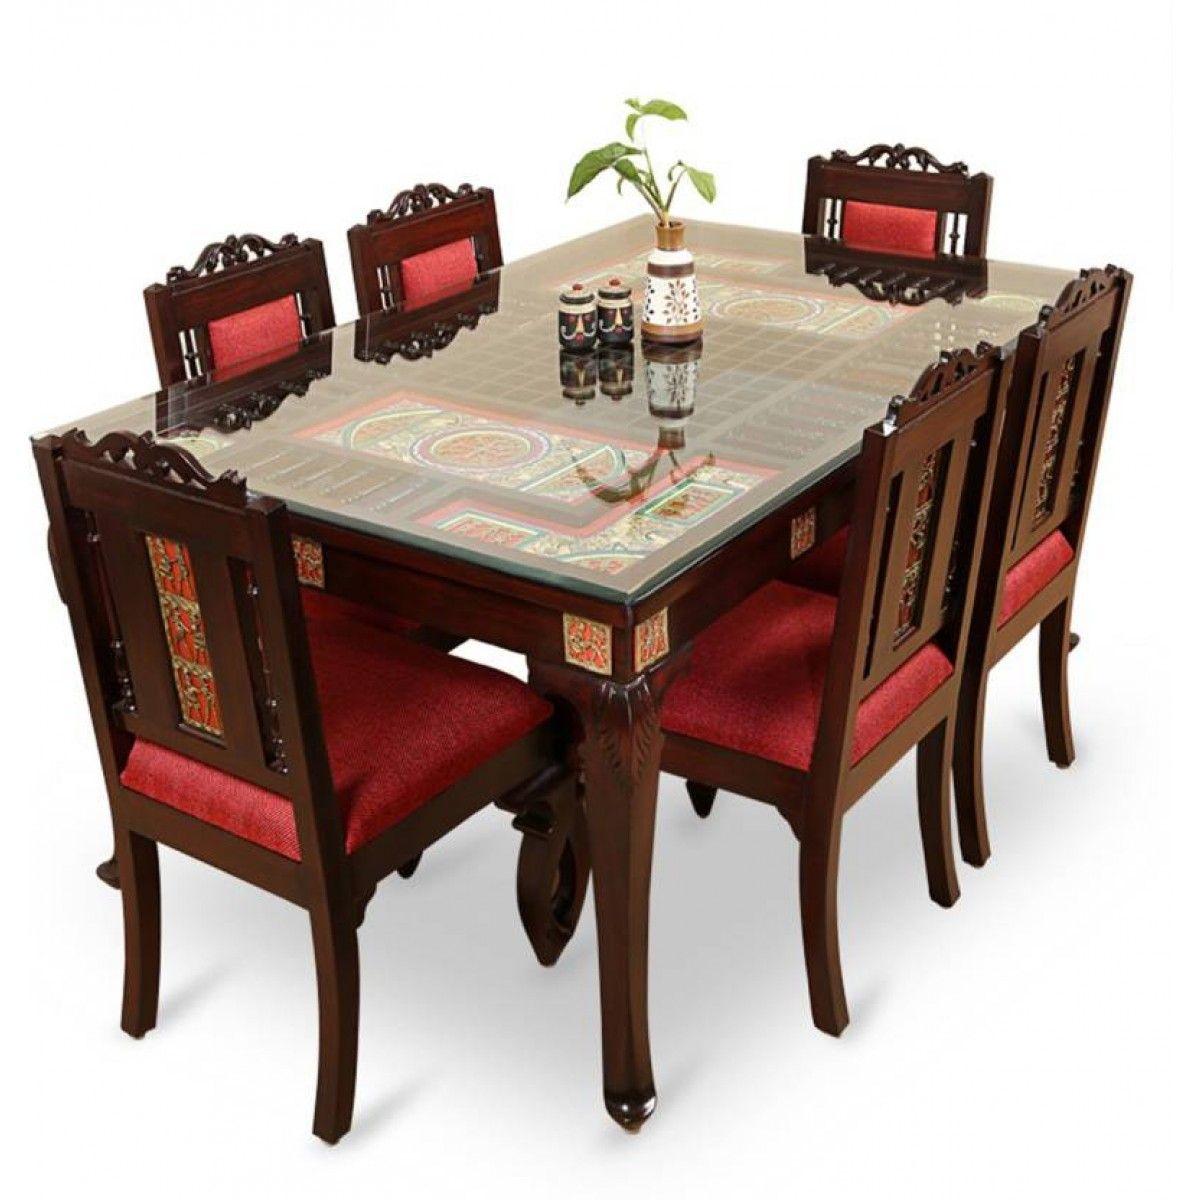 6 Seater Dining Table Set Online Make Your Every Meal A Great